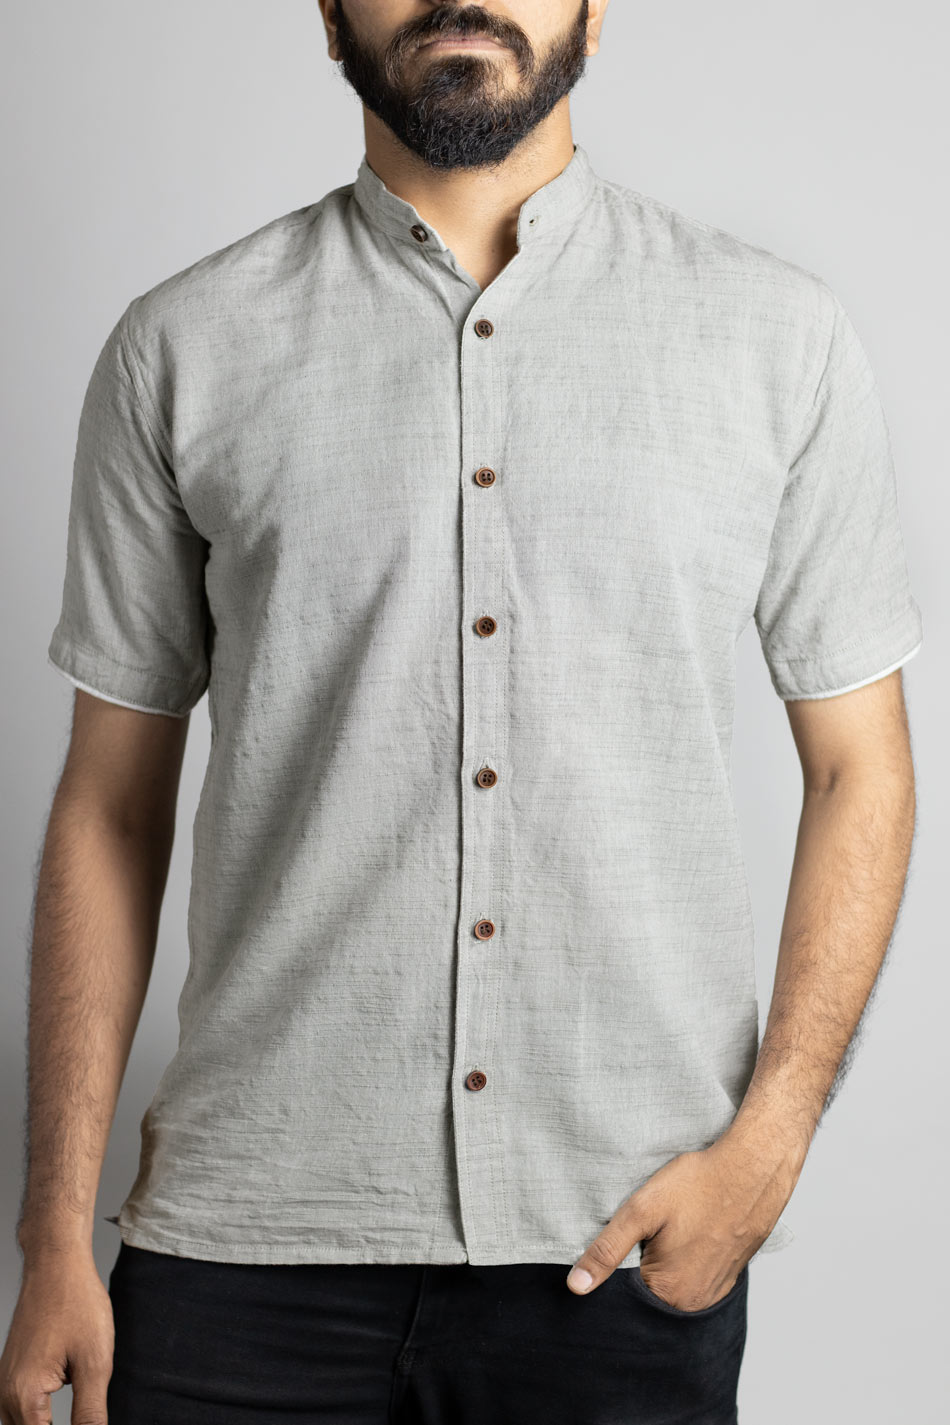 mens shirt cotton ash grey